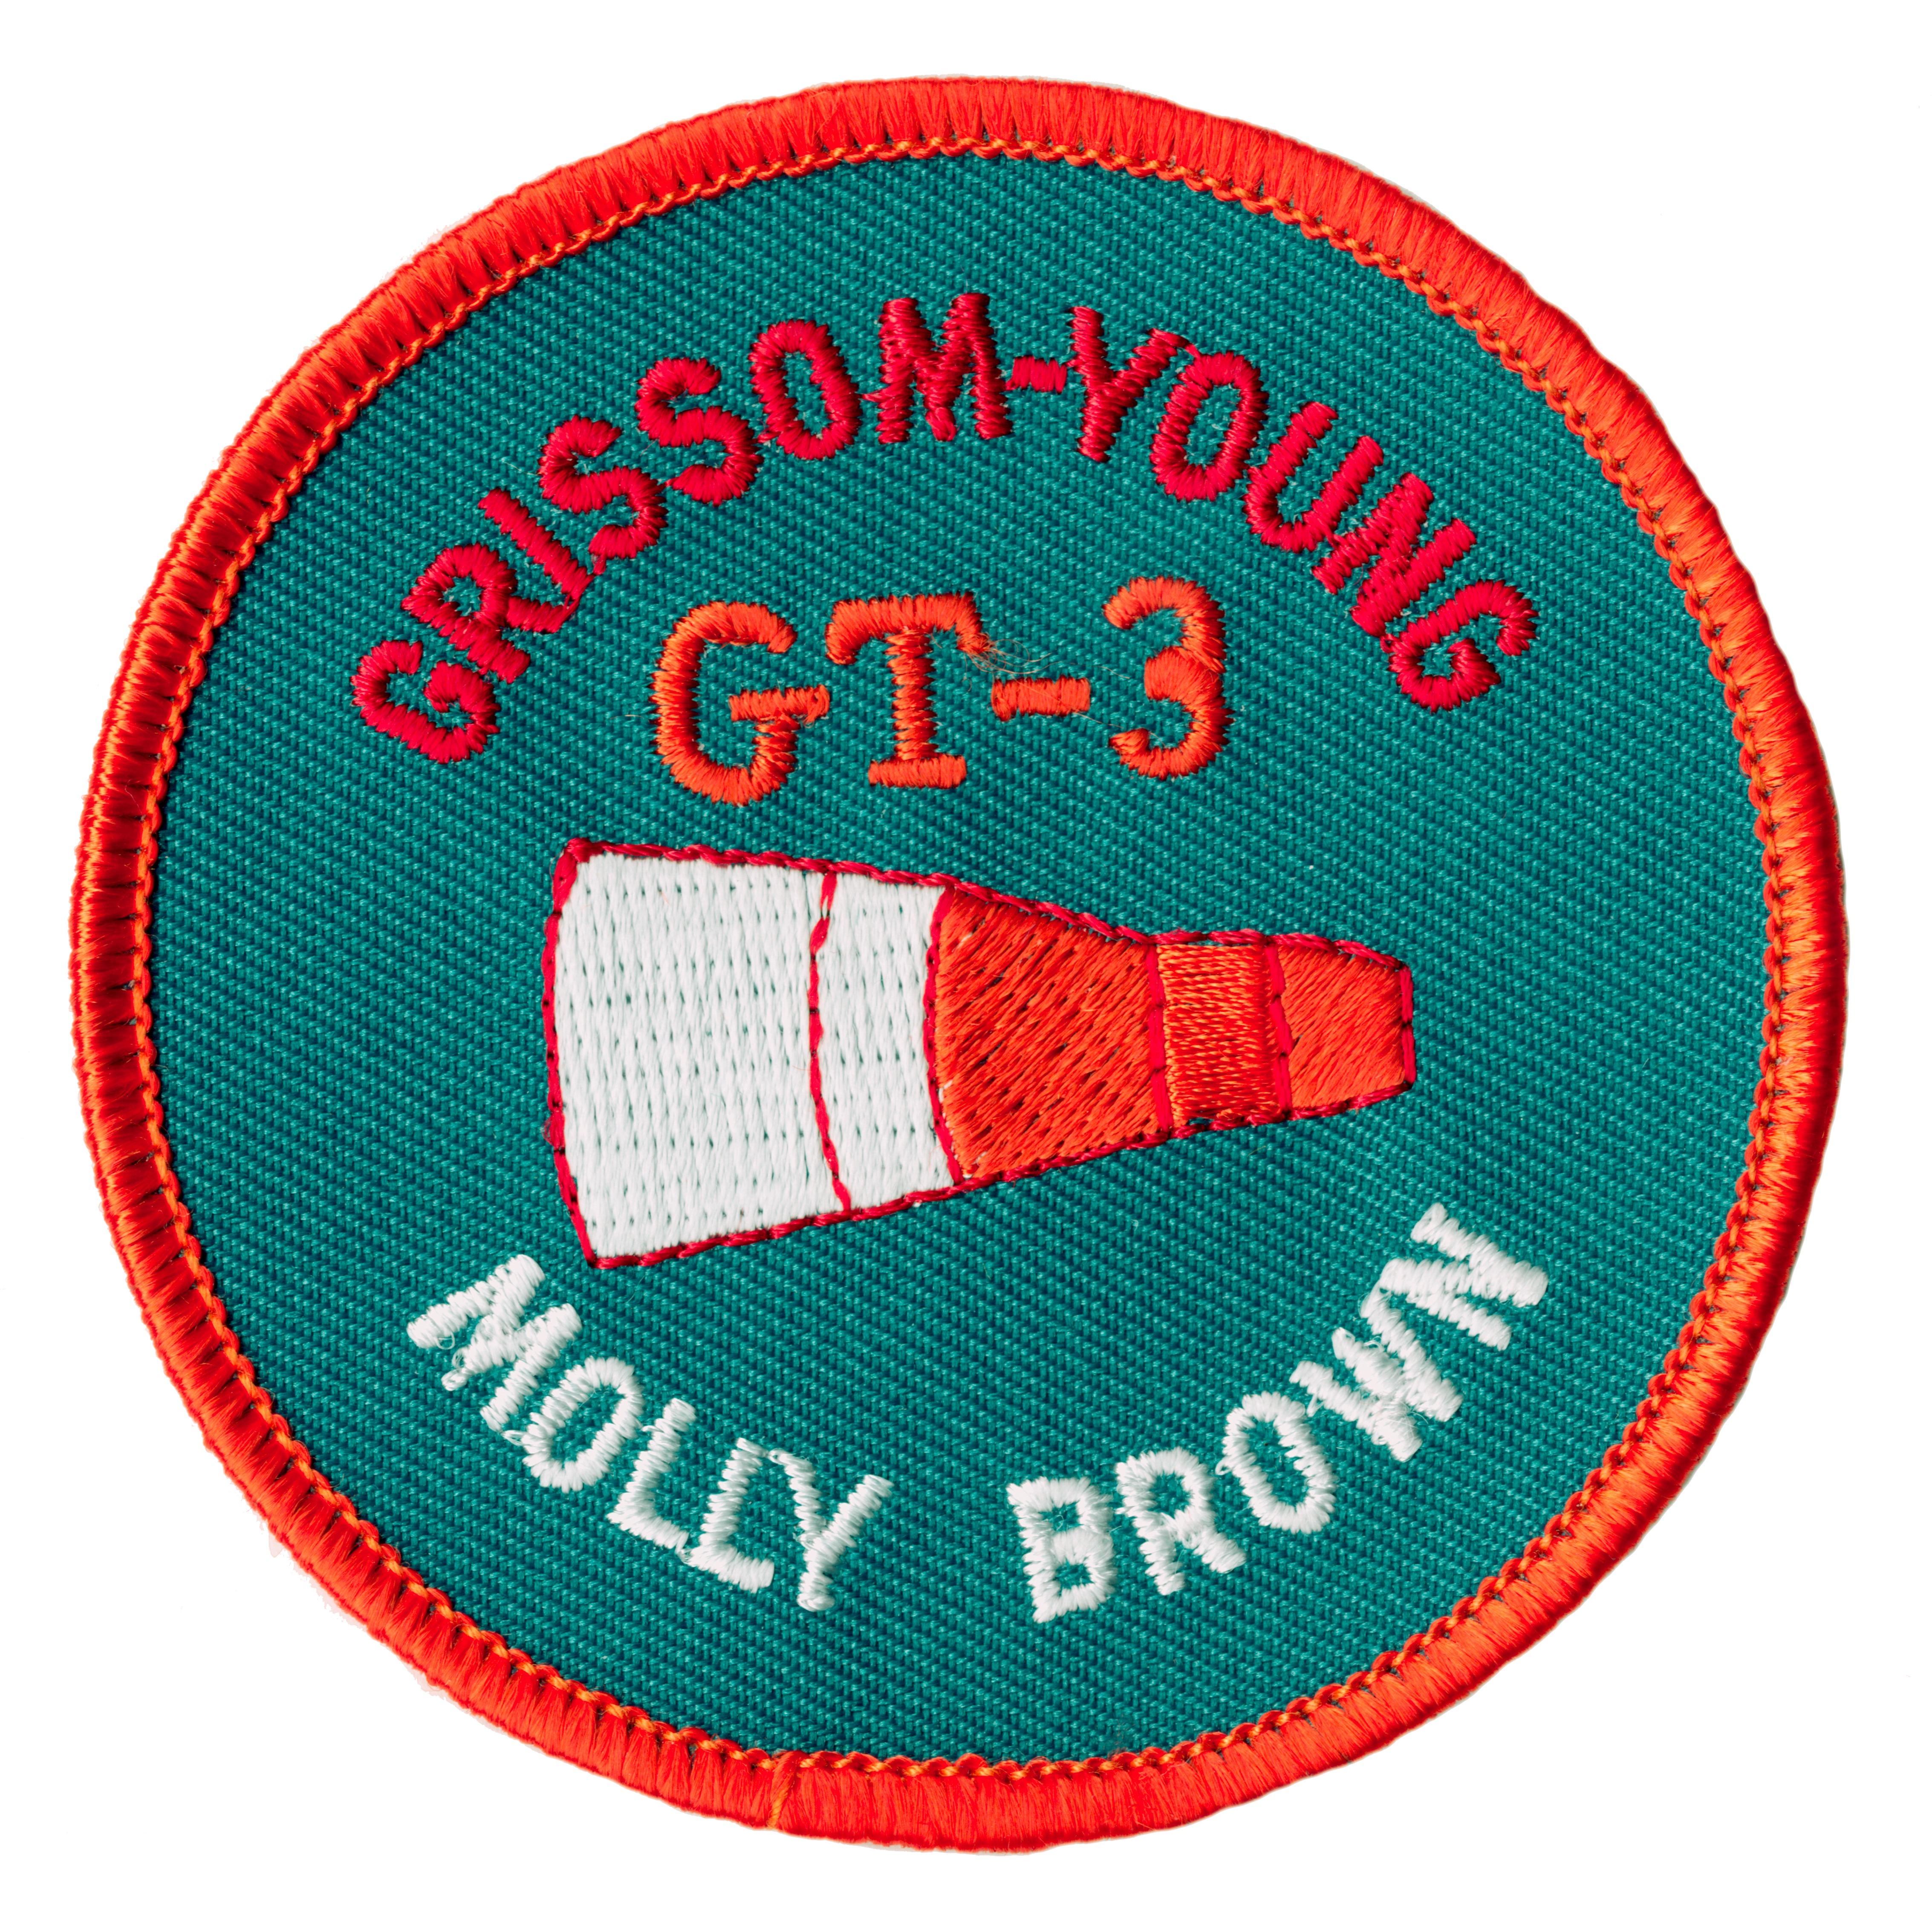 gemini space mission badges - photo #9